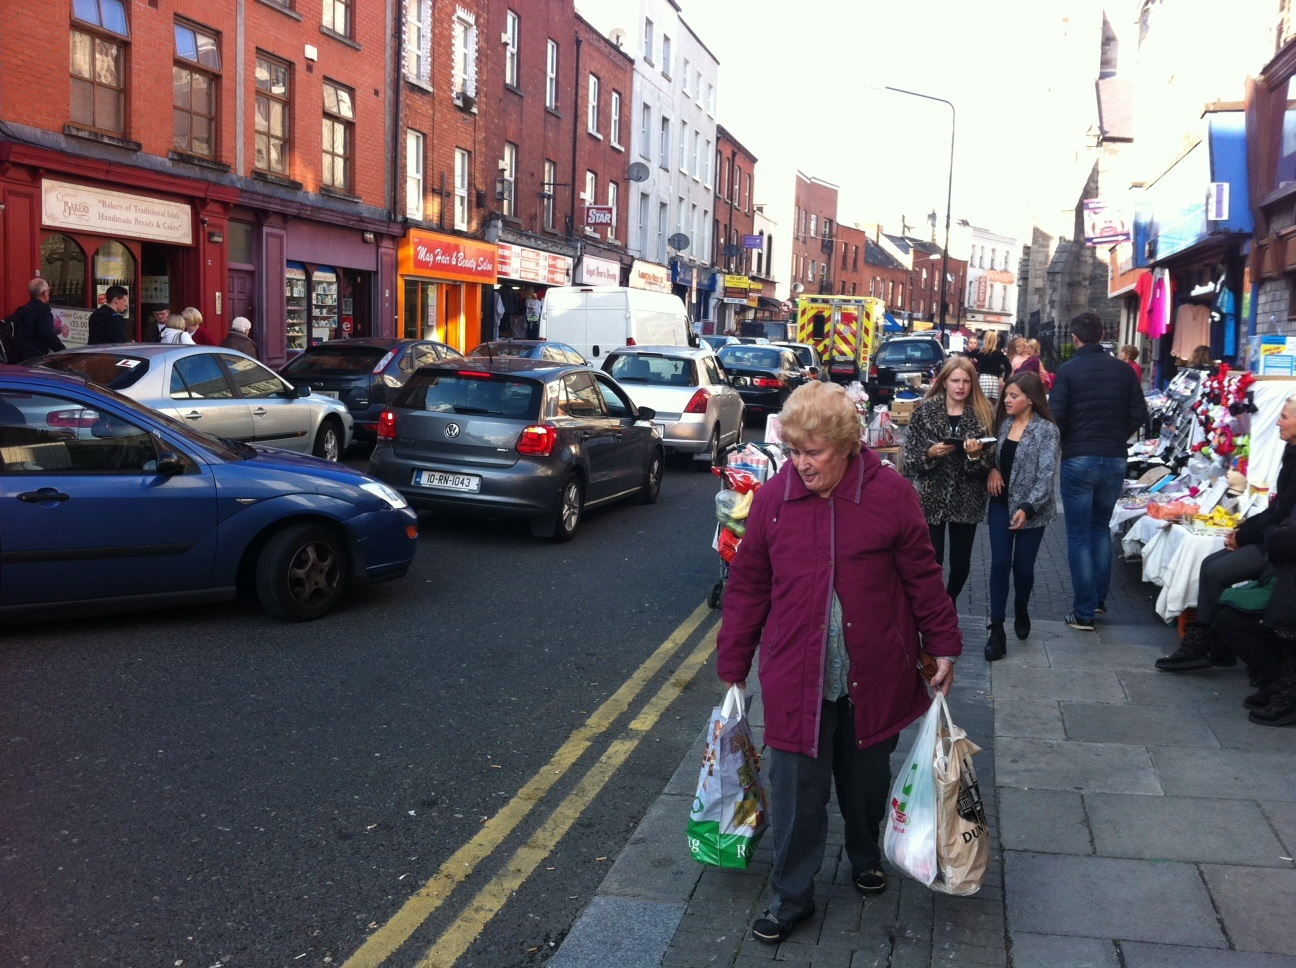 Just a block away, locals of all ages were shopping up a storm on Meath Street.